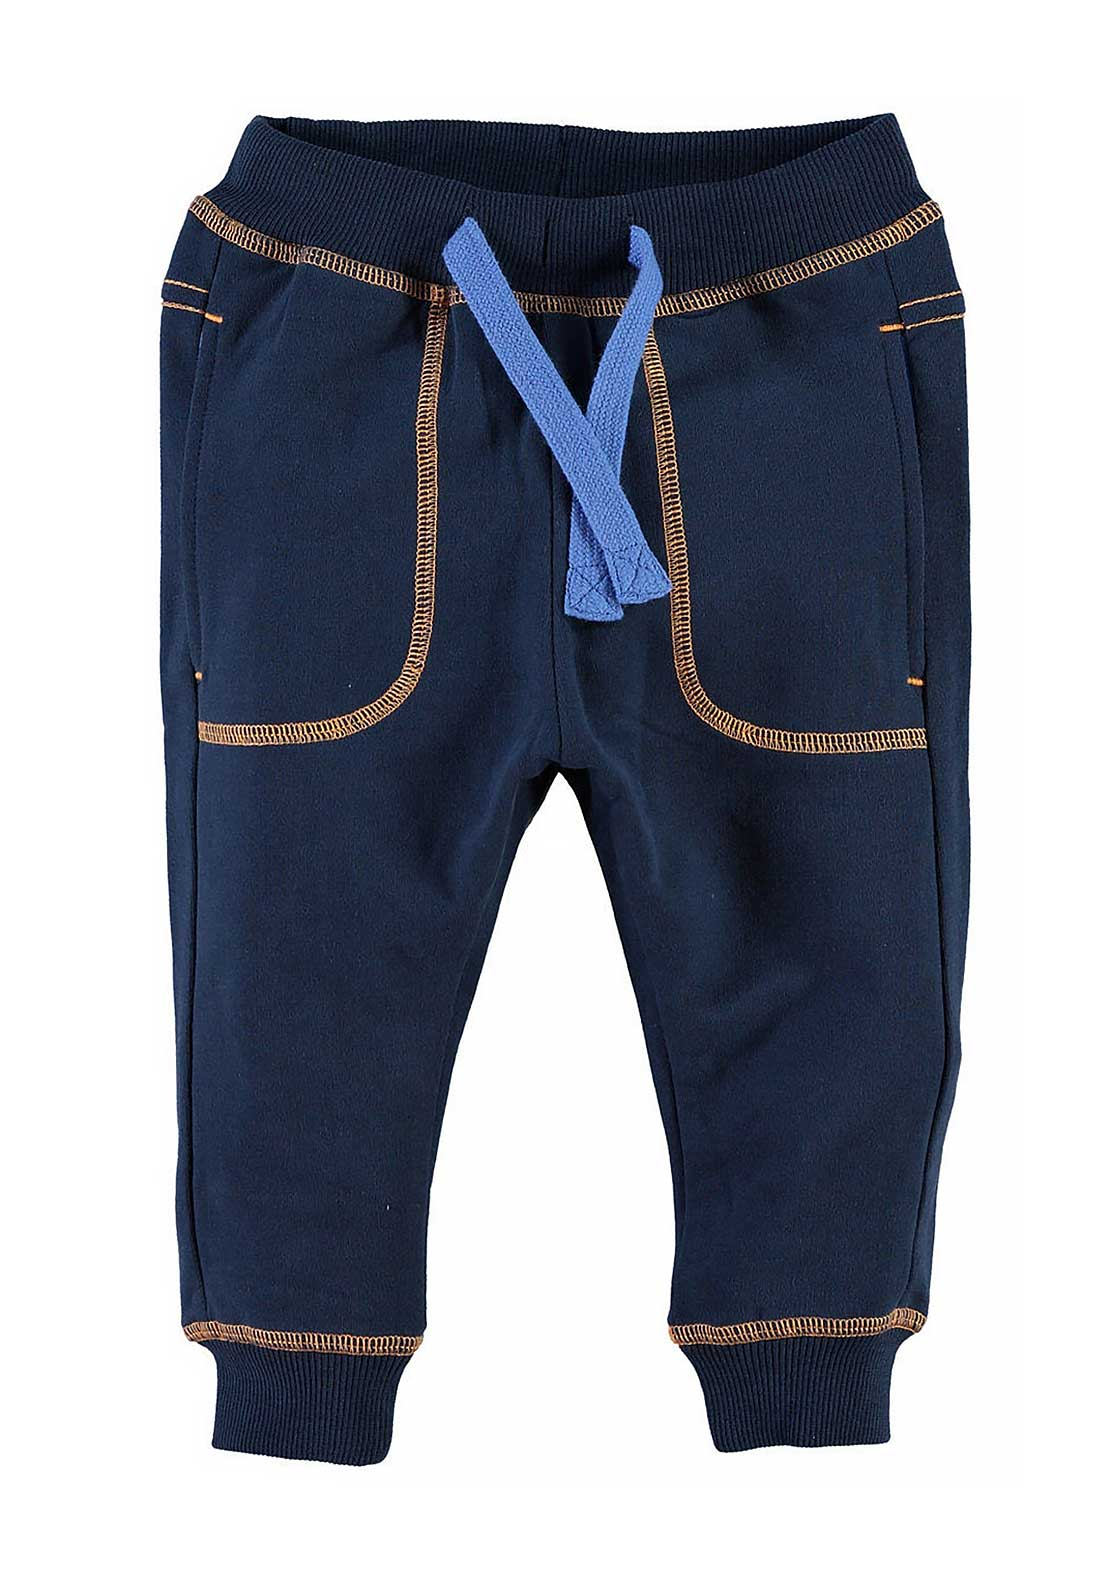 Name It Boys Demetri Sweat Pant Bottoms, Dress Blues